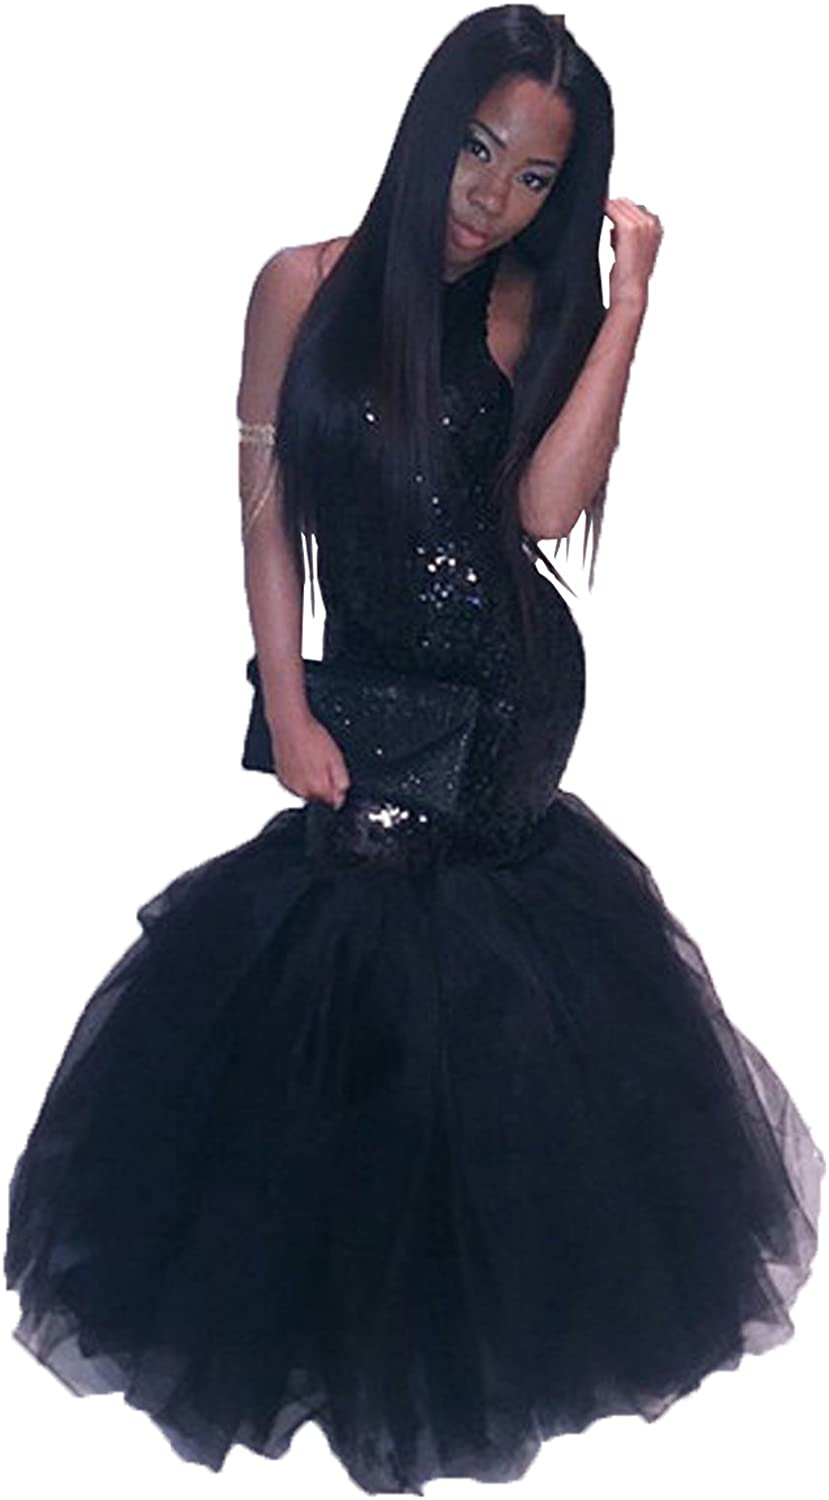 Wdress Pom Dresses Black Mermaid Halter Shiny Sequin Formal Party Evening Gowns